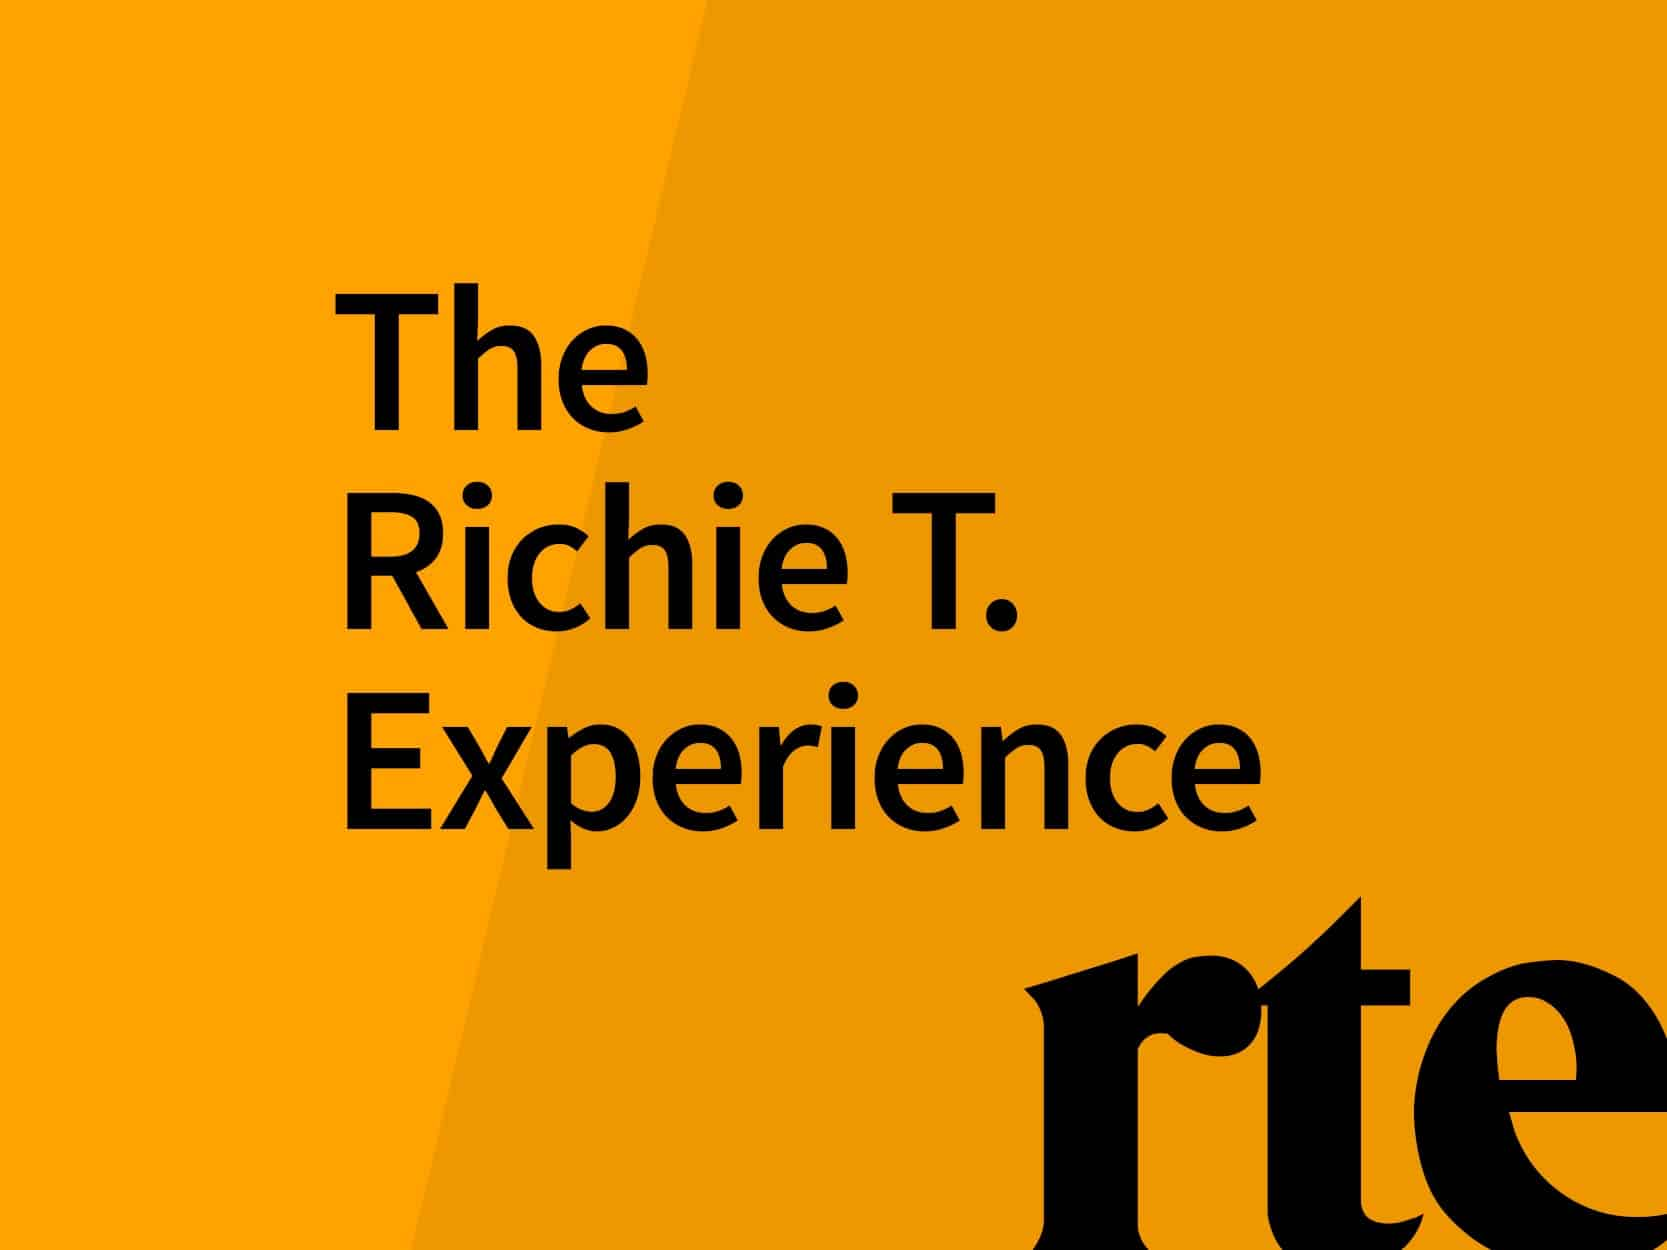 richie t. Experience logo